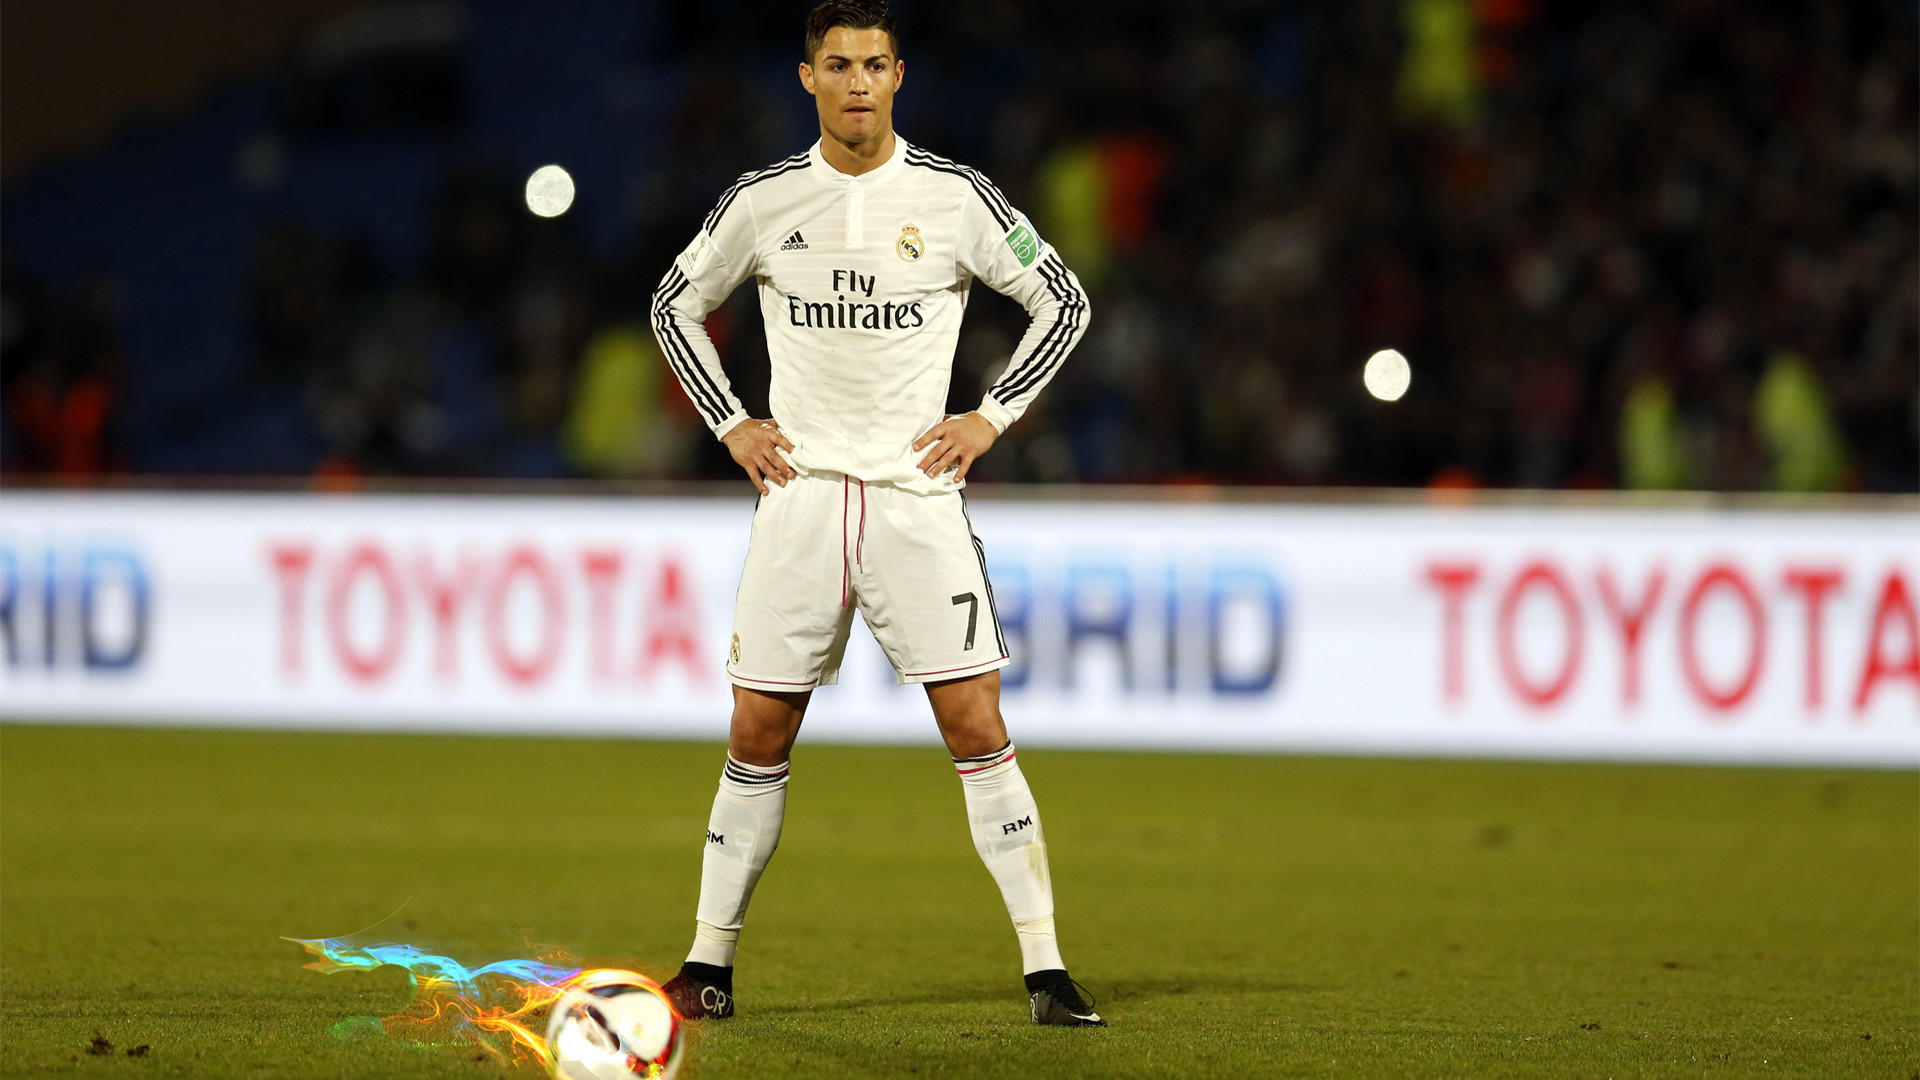 1920x1080 ... Cristiano Ronaldo Hd Wallpaper 2017 16 Wallpaper Hd Cristiano Ronaldo  Fire Football Players On Images For ...